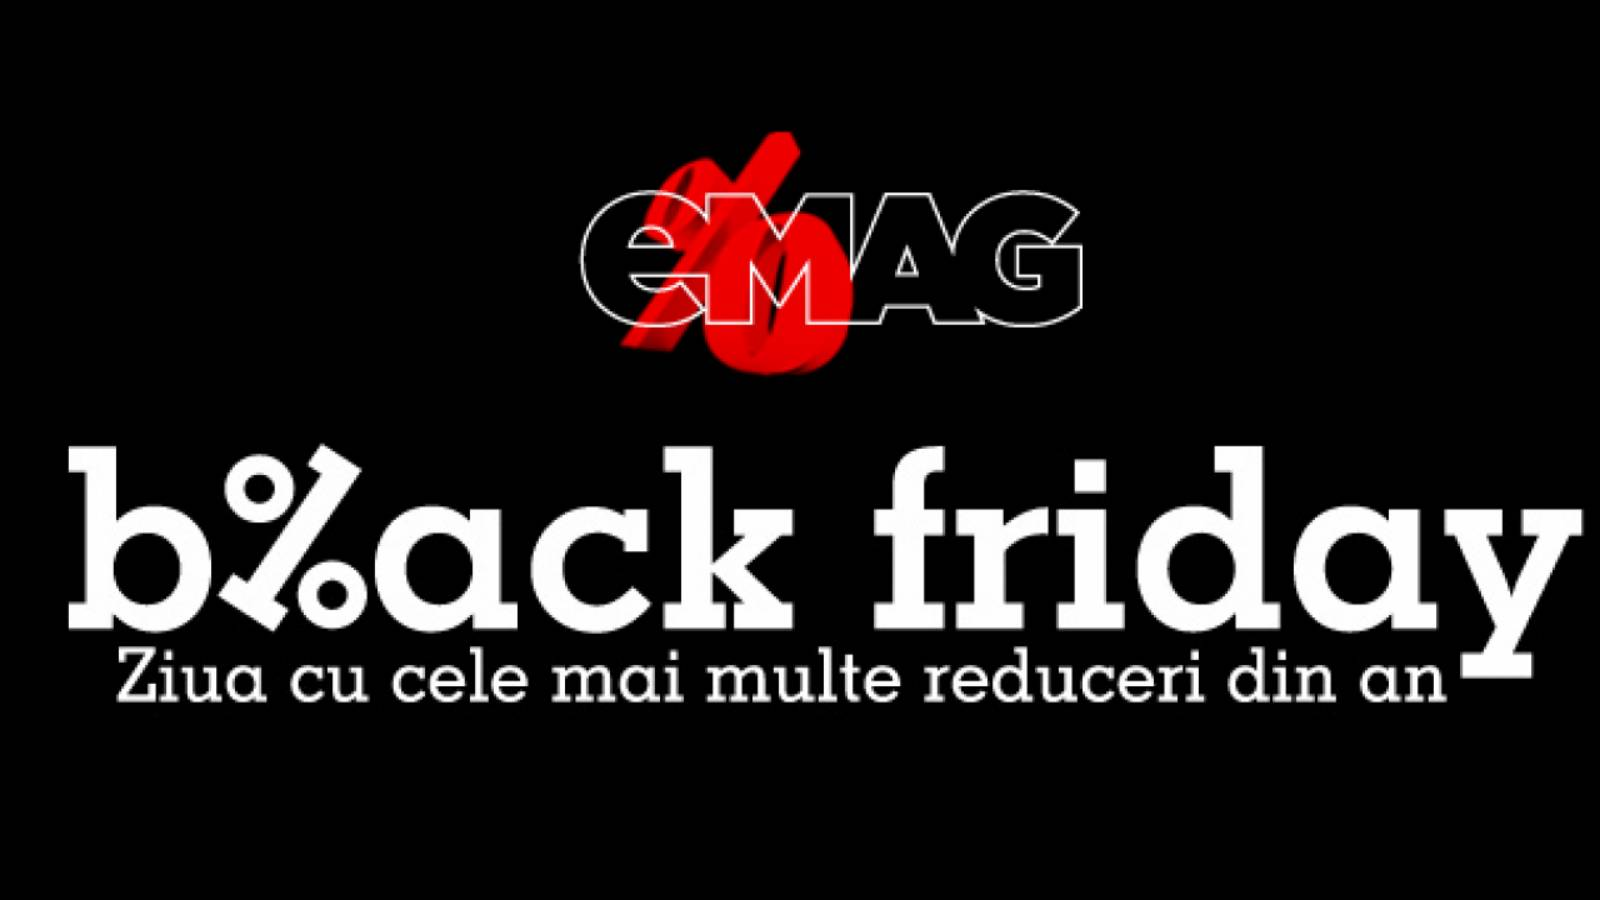 eMAG Black Friday 2021 12 Noiembrie Romania